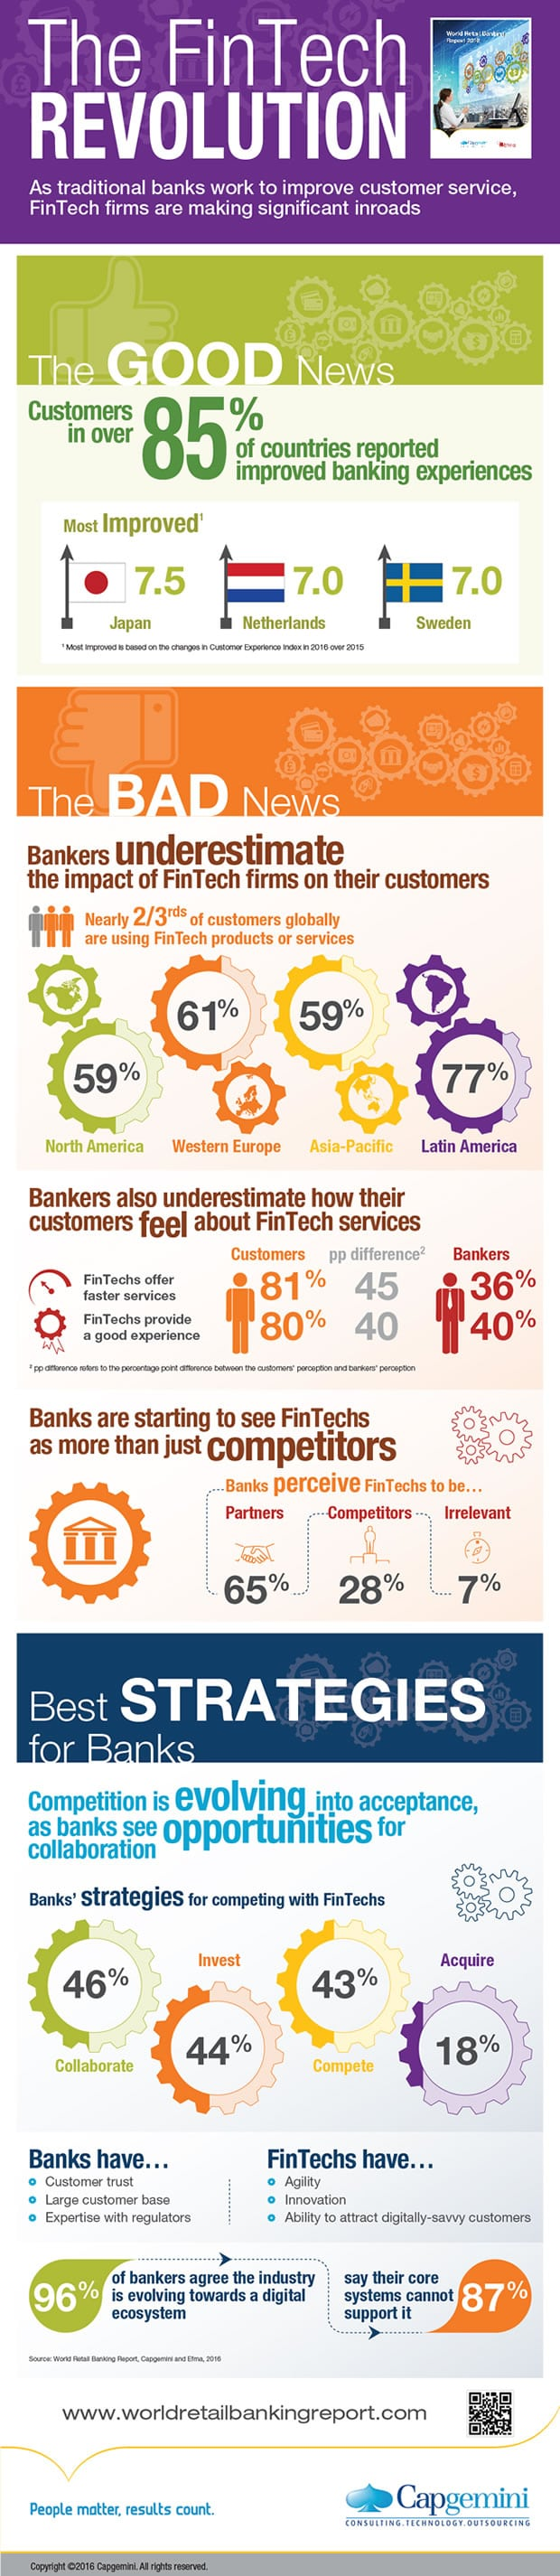 The FinTech Revolution - infographic World Retail Banking Report 2016 - source and more formats in press release